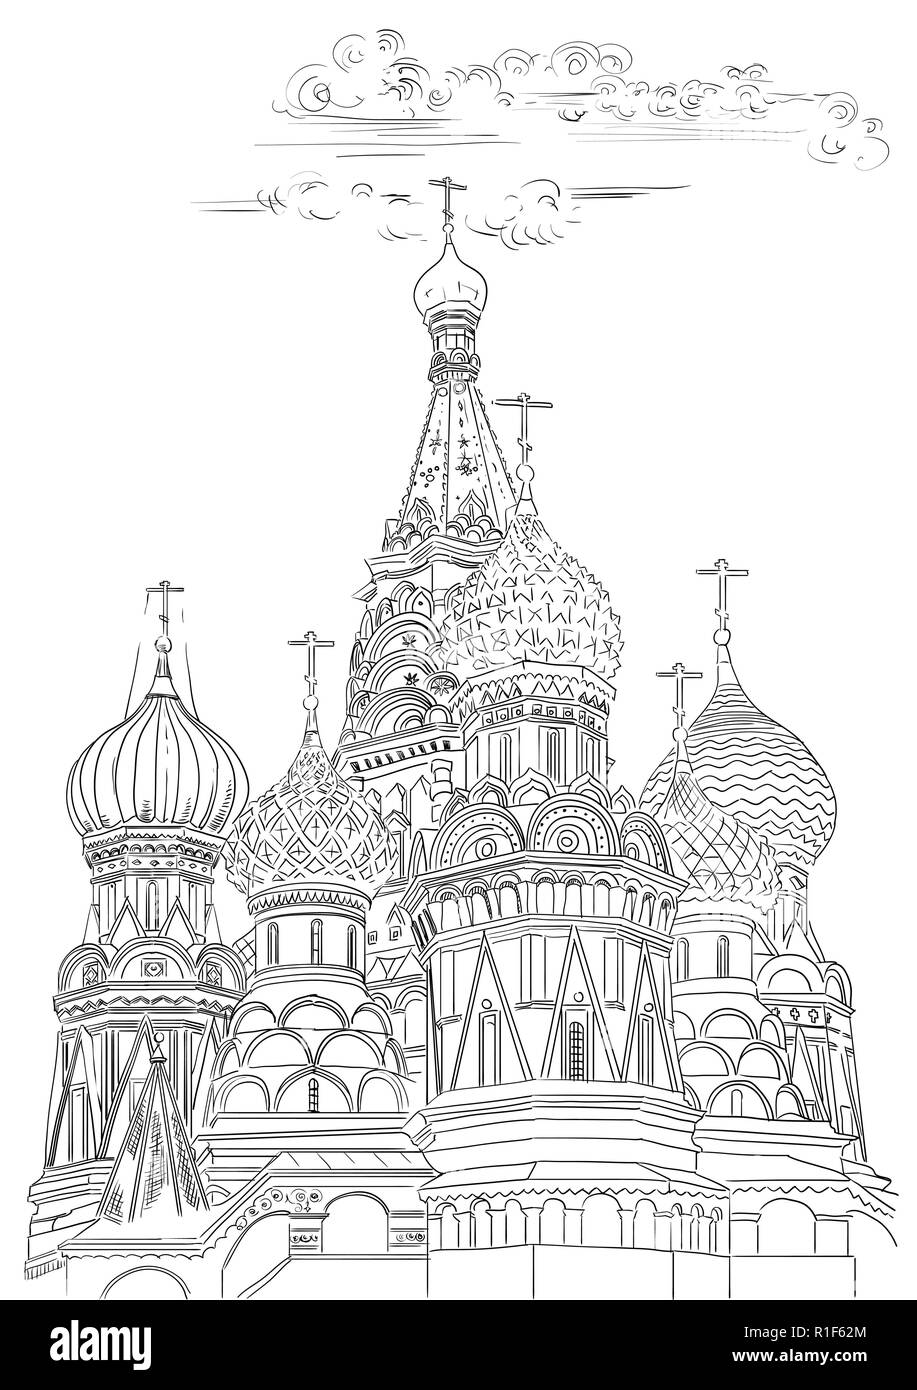 Saint Basils Cathedral of Kremlin (Moscow, Russia) isolated vector hand drawing illustration in black color on white background - Stock Image